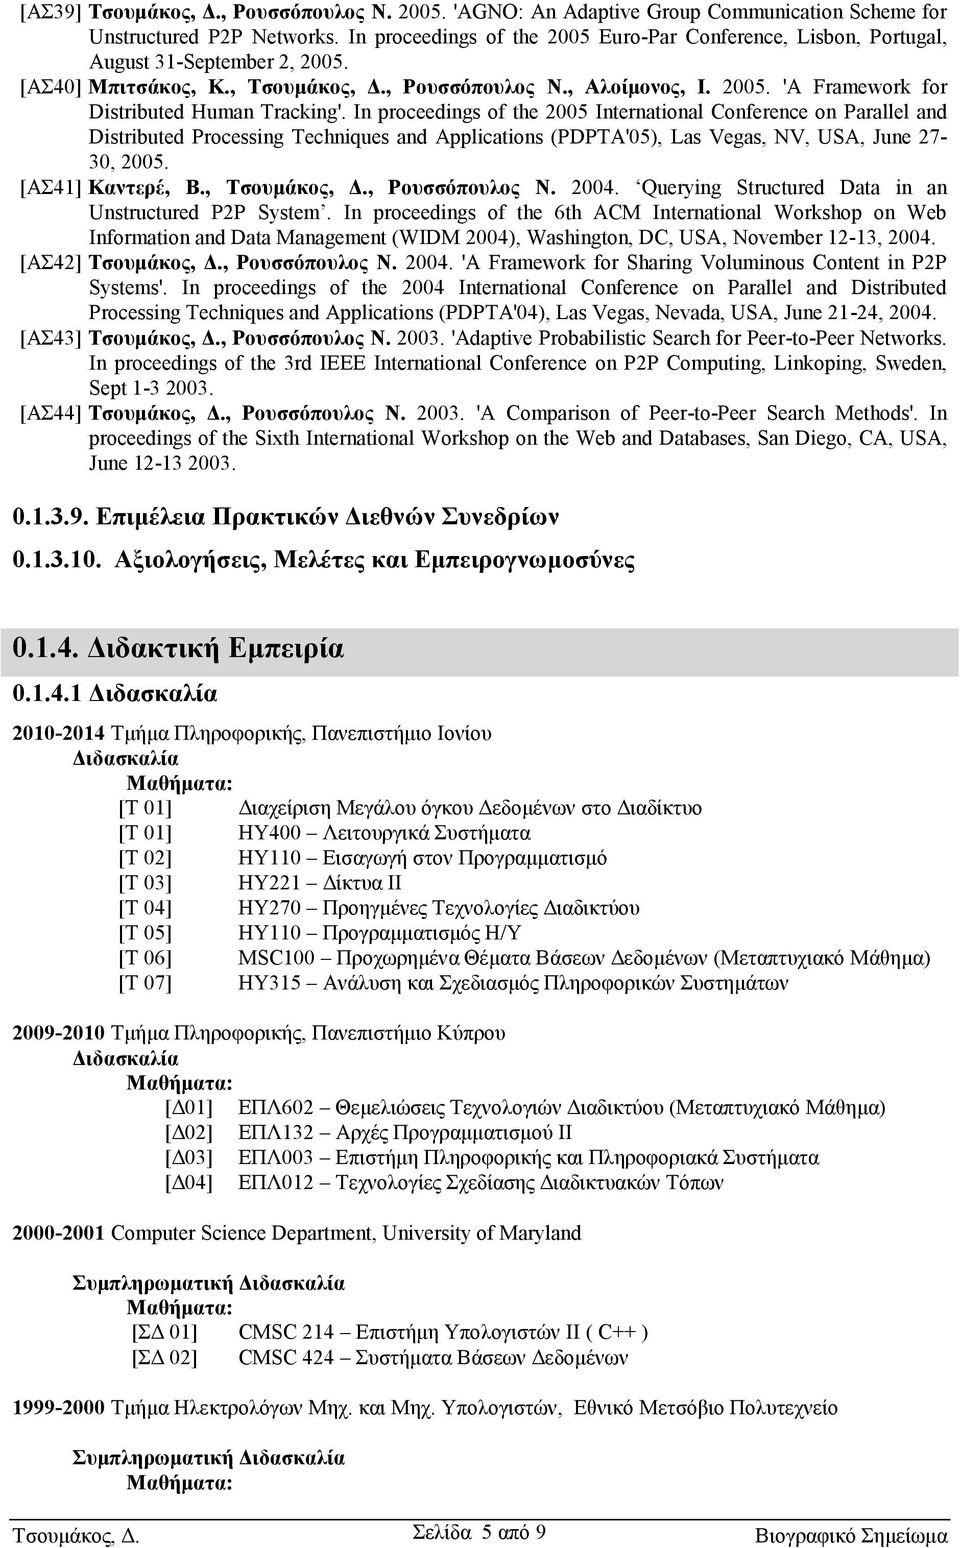 In proceedings of the 2005 International Conference on Parallel and Distributed Processing Techniques and Applications (PDPTA'05), Las Vegas, NV, USA, June 27-30, 2005. [ΑΣ41] Καντερέ, Β.